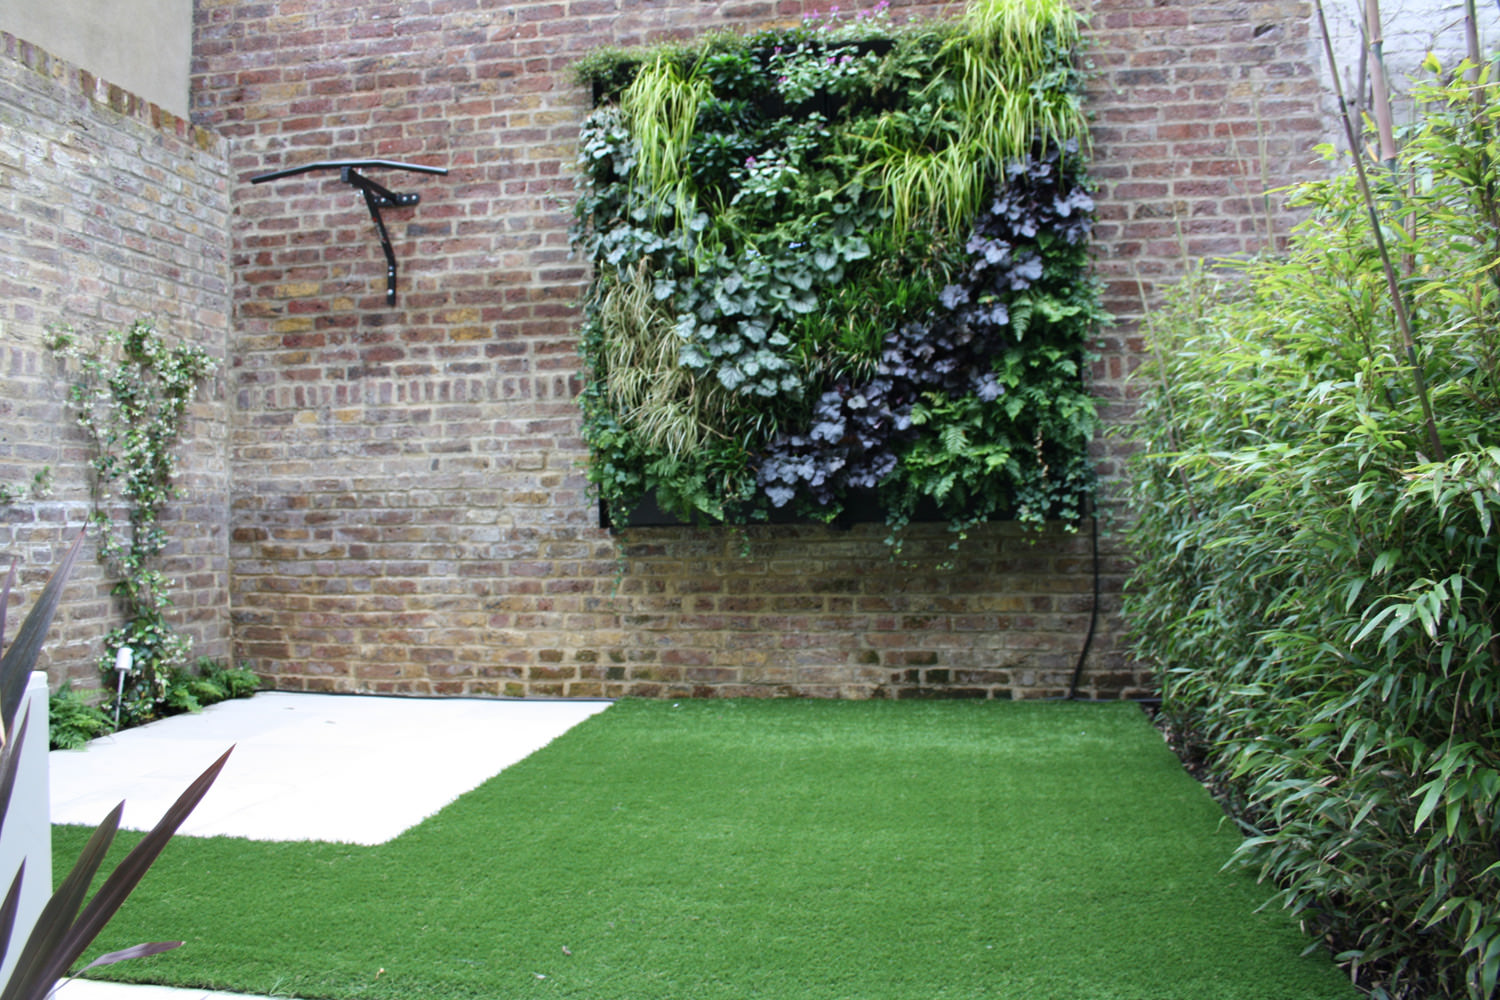 Top 10 london garden designs garden club london for Small garden ideas uk